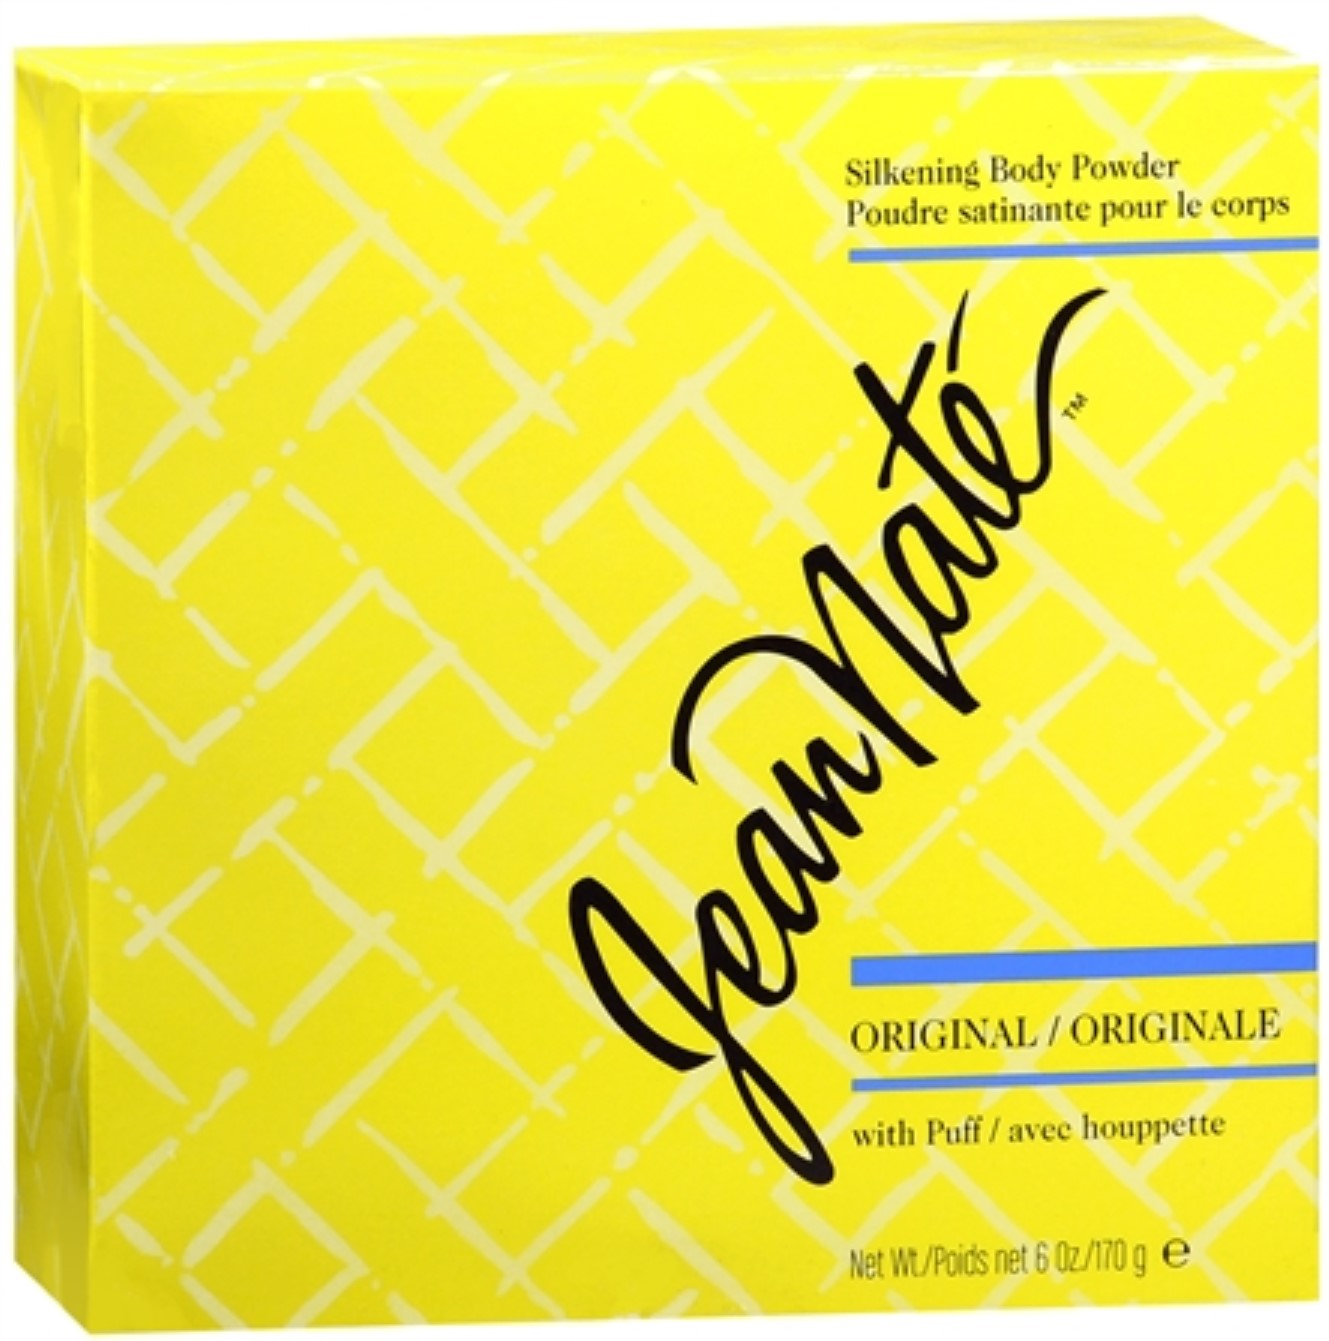 Save up to 20% every day on Jean Nate products at Rite Aid. Free shipping on orders $ or more.